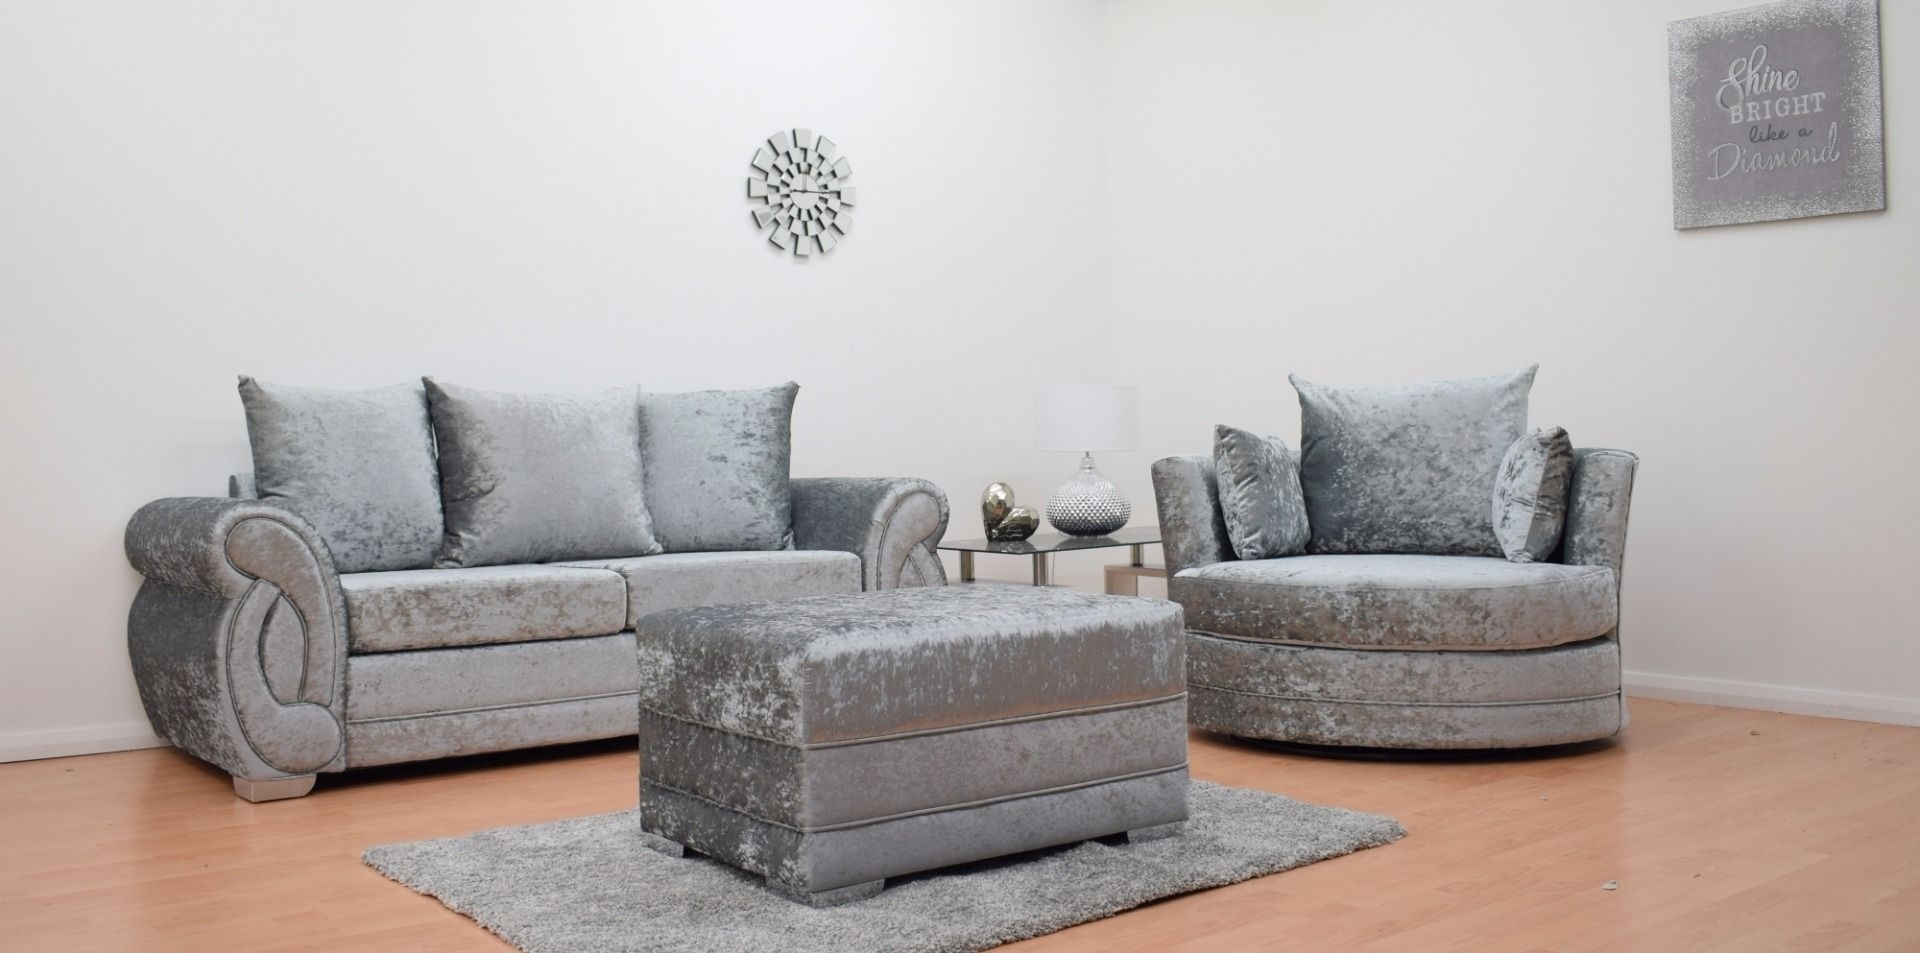 Furnish365 | Chloe 3 Seater Sofa + Cuddle Chair + Footstool – Silver Pertaining To 3 Seater Sofas And Cuddle Chairs (View 9 of 10)